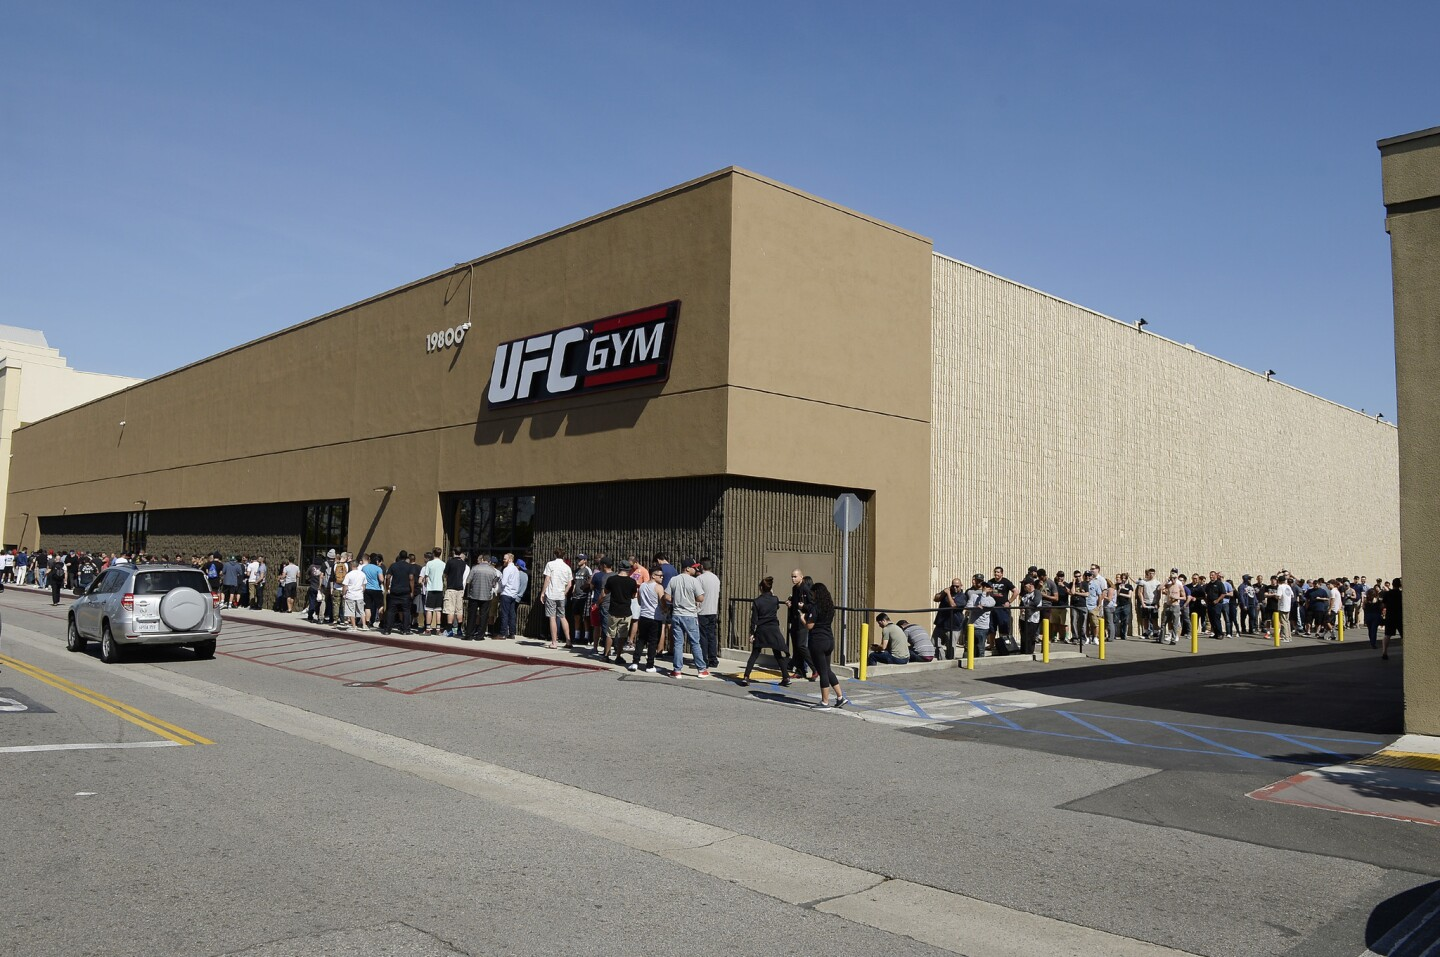 TORRANCE, CA - FEBRUARY 24: Fans wait in line for a news conference between UFC featherweight champion Conor McGregor and lightweight contender Nate Diaz participate in a news conference at UFC gym February 24, 2016, in Torrance, California. (Photo by Kevork Djansezian/Getty Images) ** OUTS - ELSENT, FPG, CM - OUTS * NM, PH, VA if sourced by CT, LA or MoD **